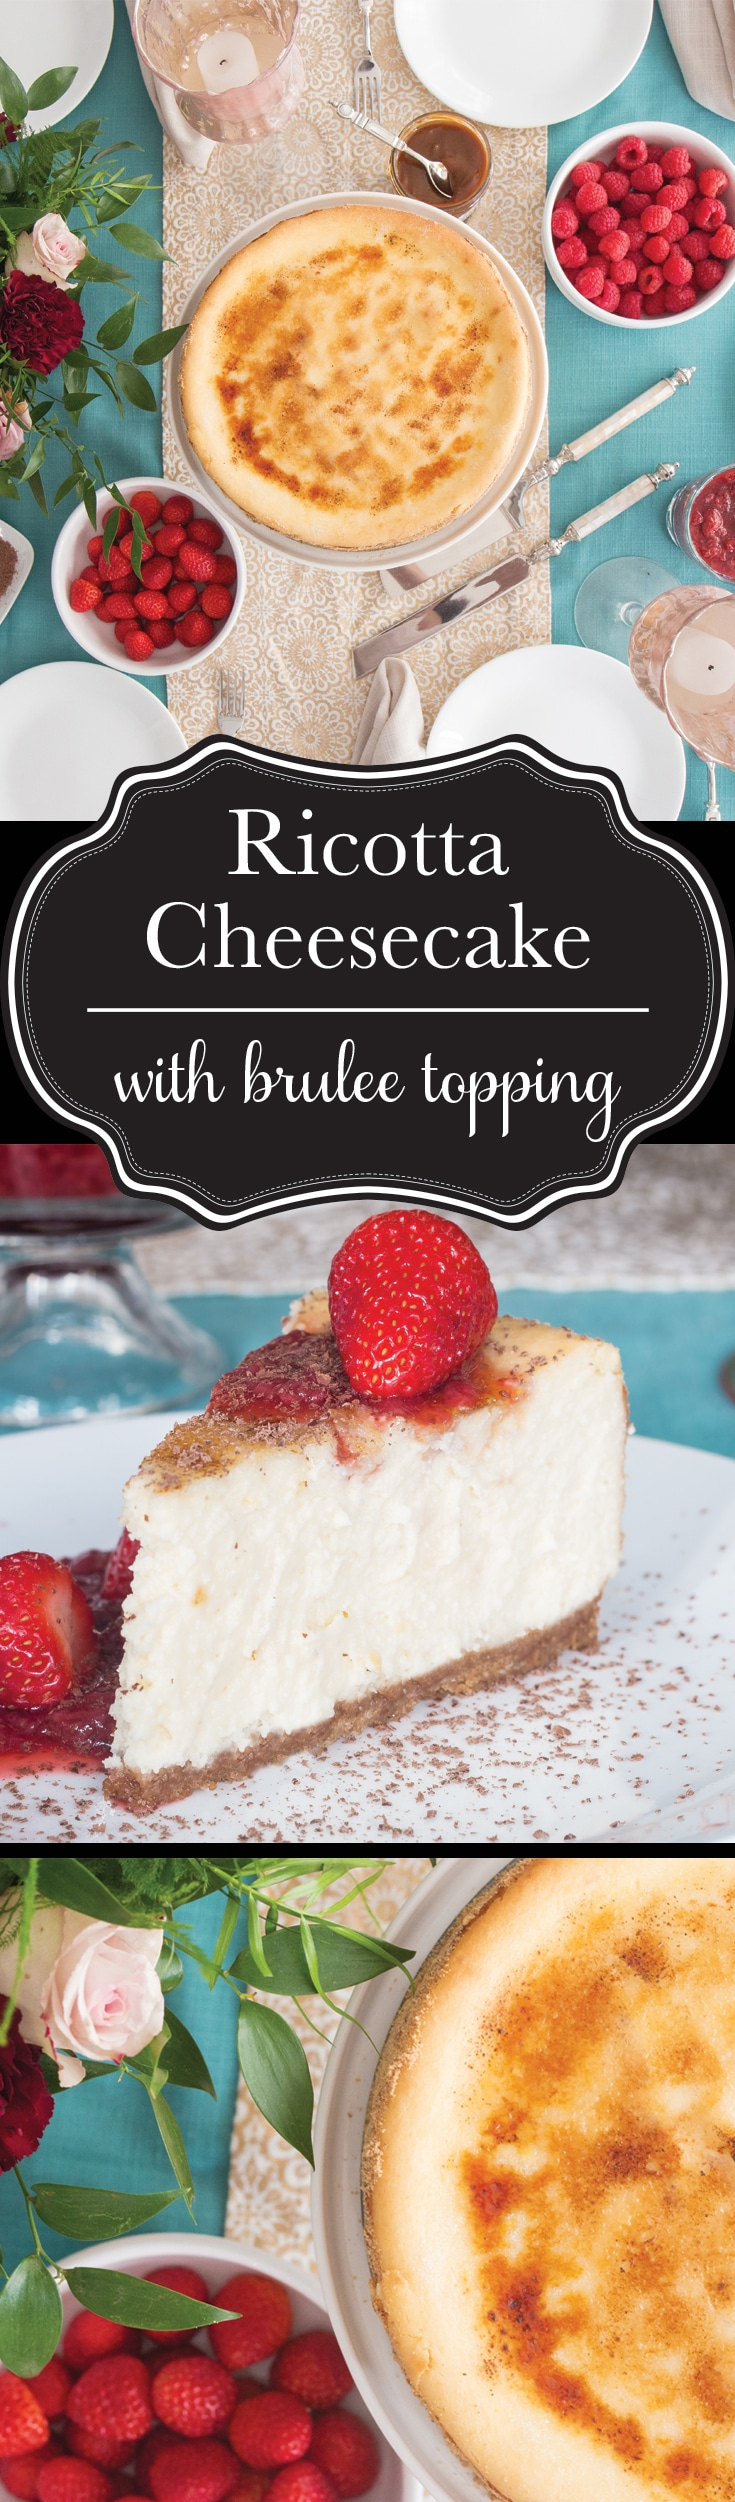 "A fusion of traditional and Italian style cheesecake leaves this one bursting with bright flavour in every extra smooth and creamy bite. The ""icing"" on this cake? A crisp, caramelized, brûlée topping that will have everyone begging you for seconds."